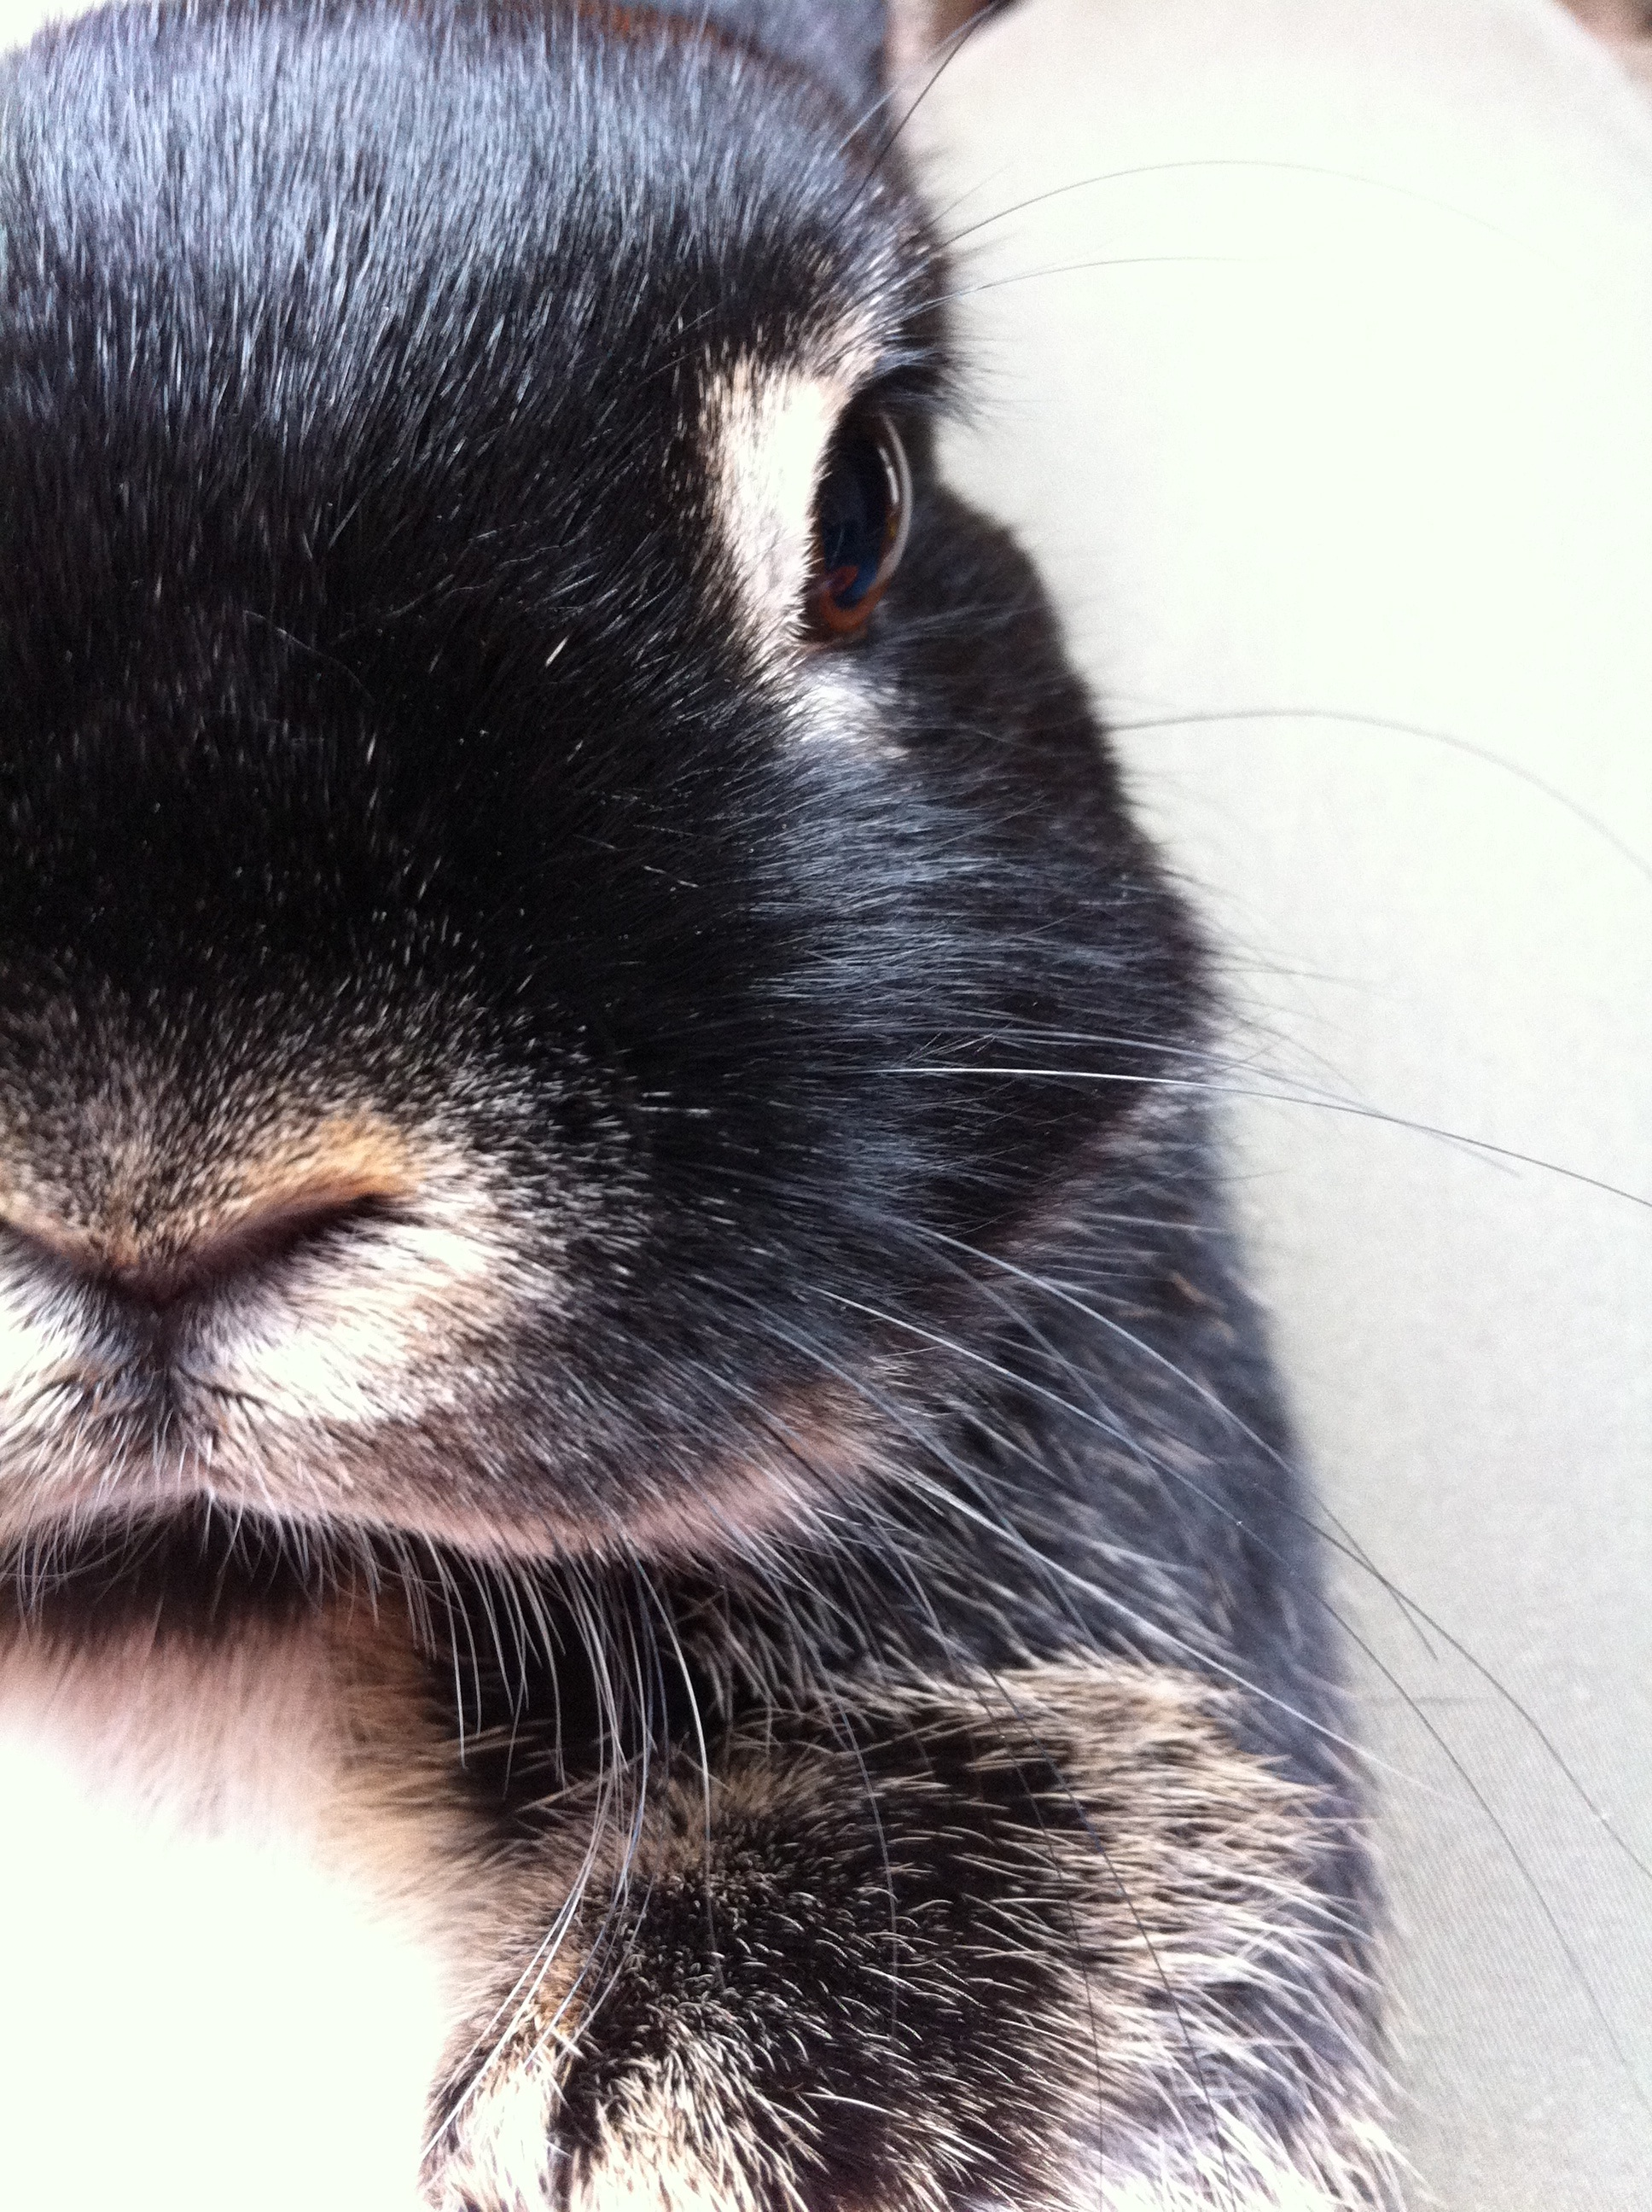 Bunny's Close-Up Portrait